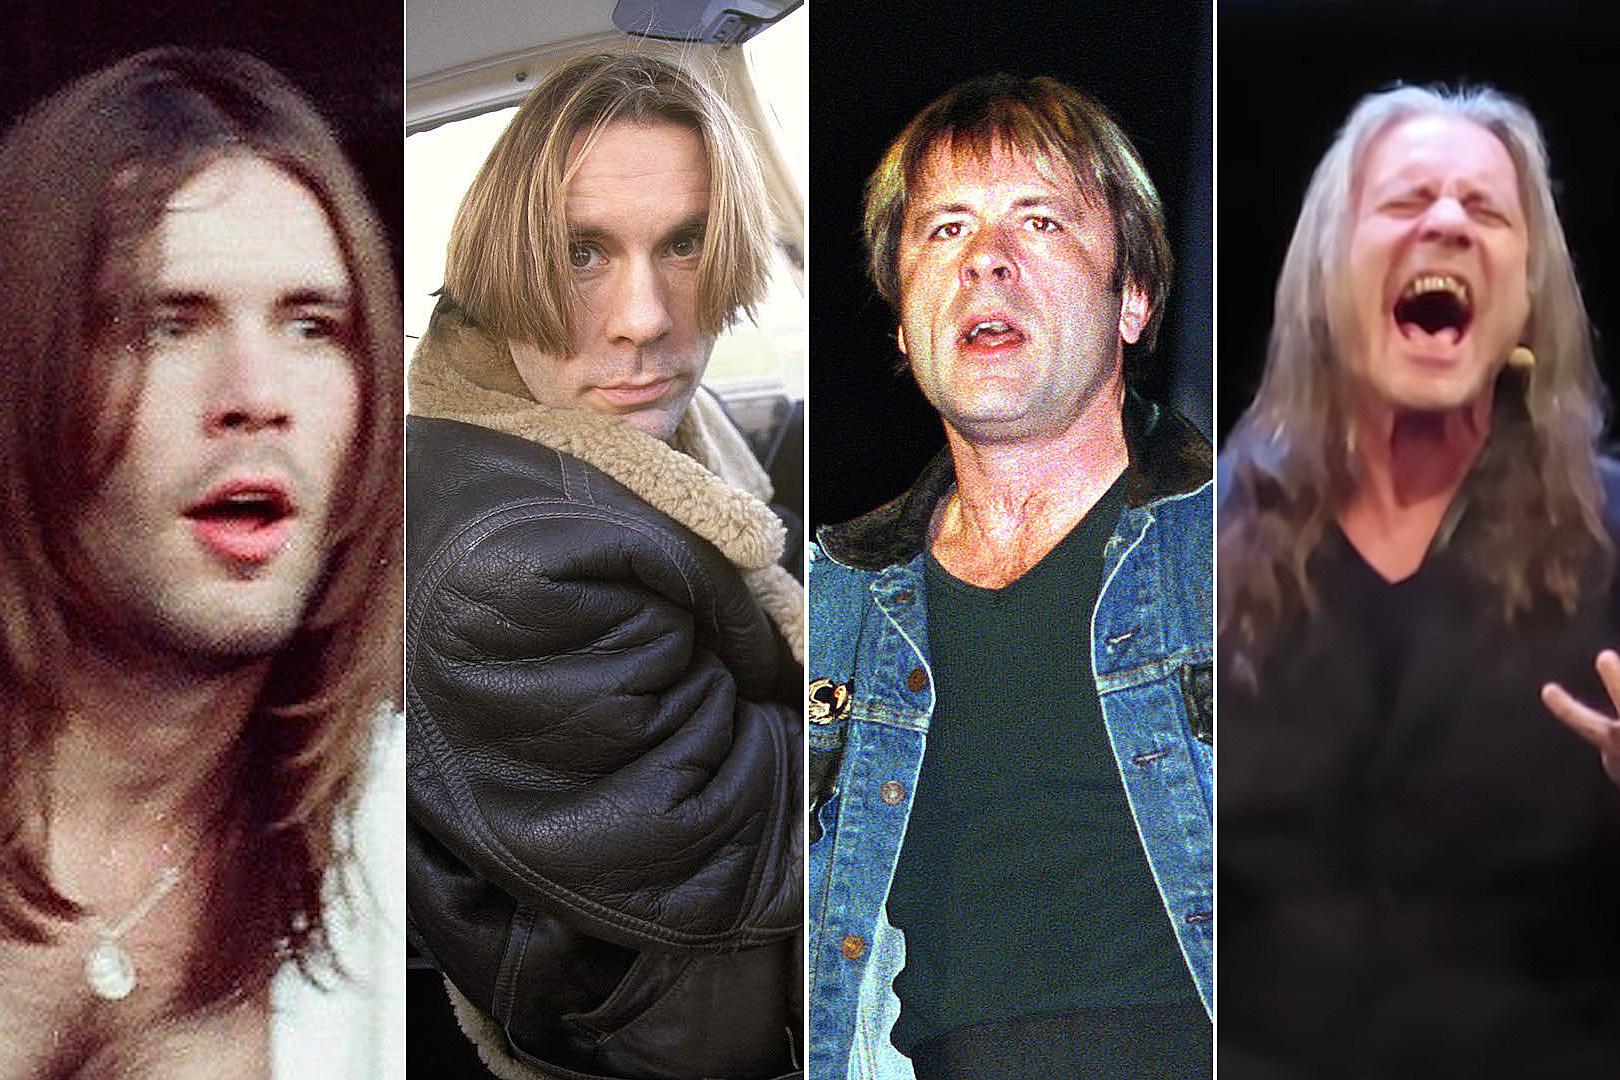 See Photos of Iron Maiden's Bruce Dickinson Through the Years